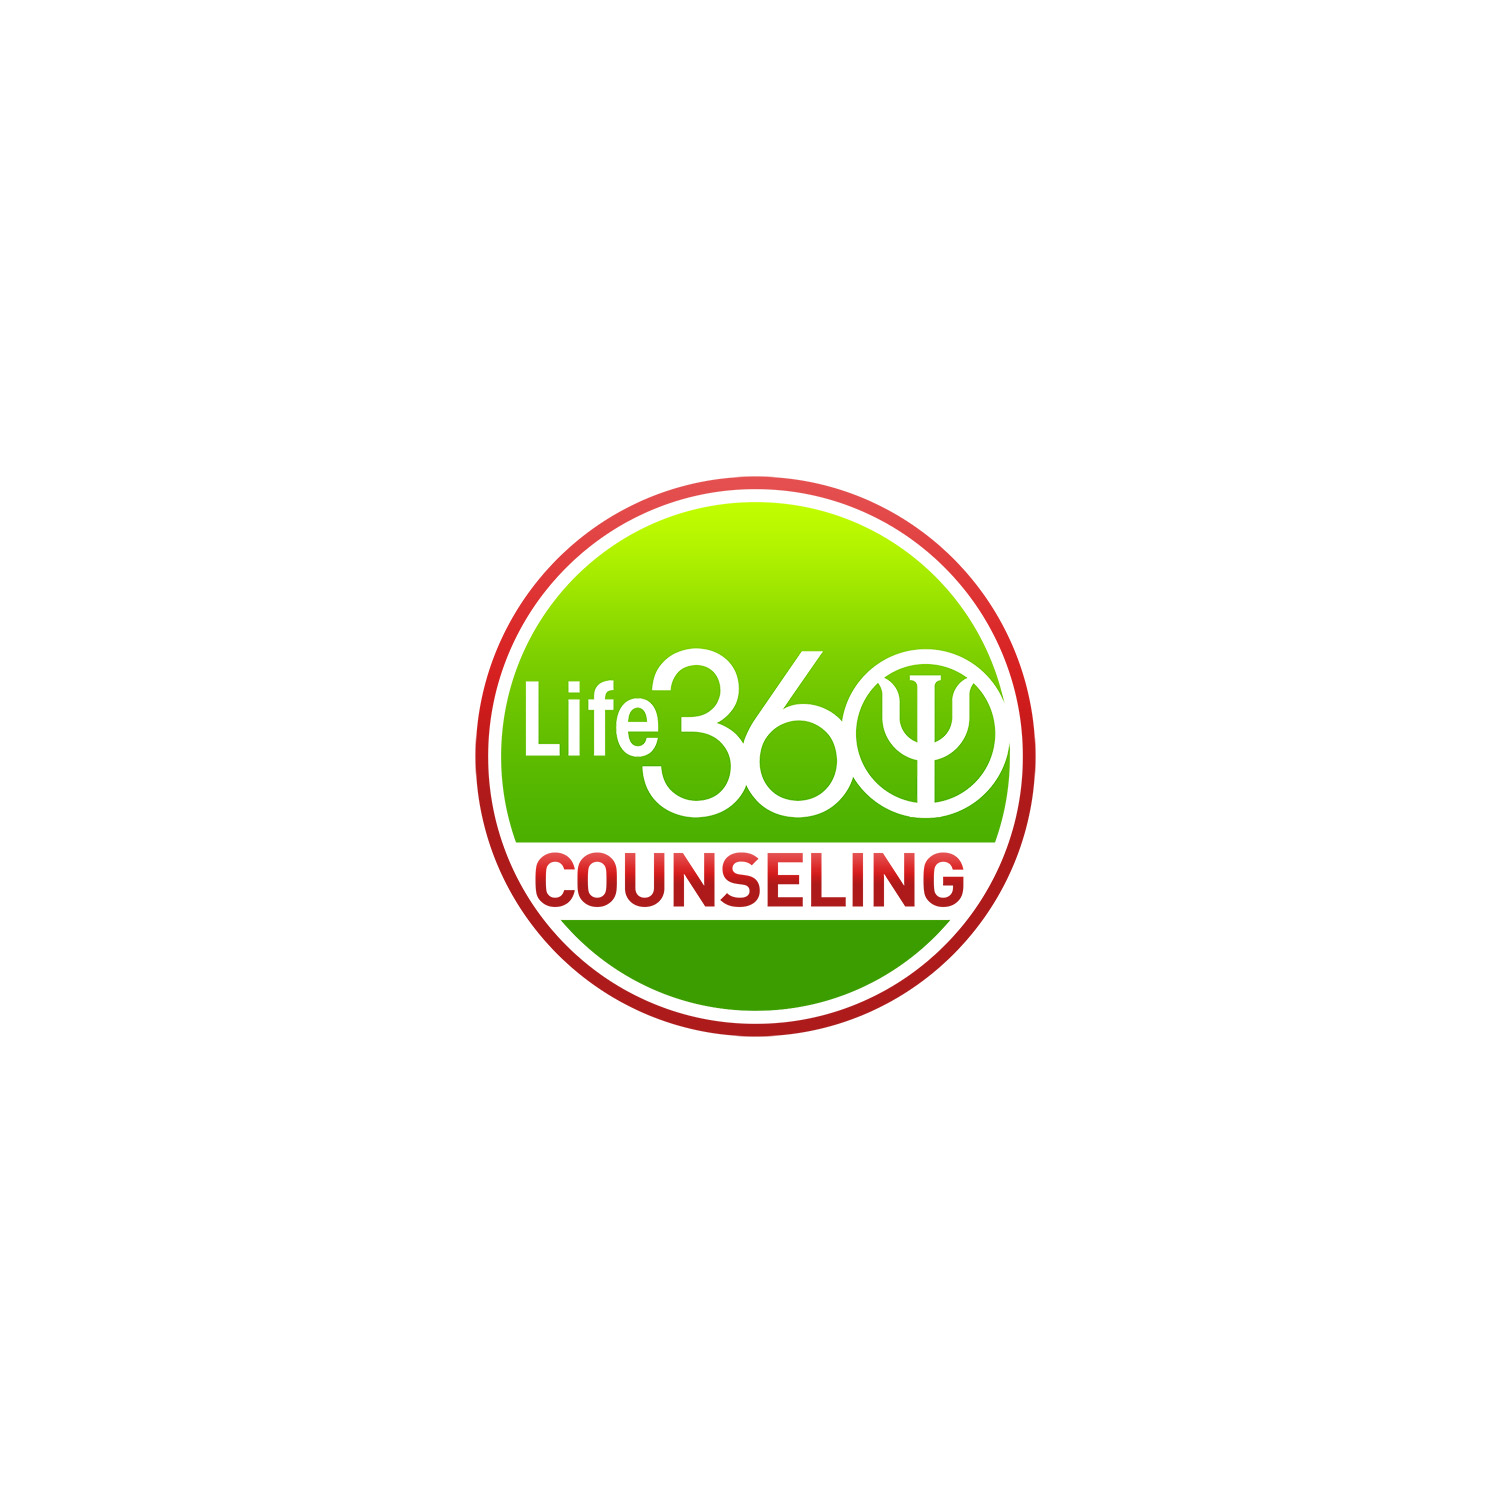 Bold, Professional, Health And Wellness Logo Design for